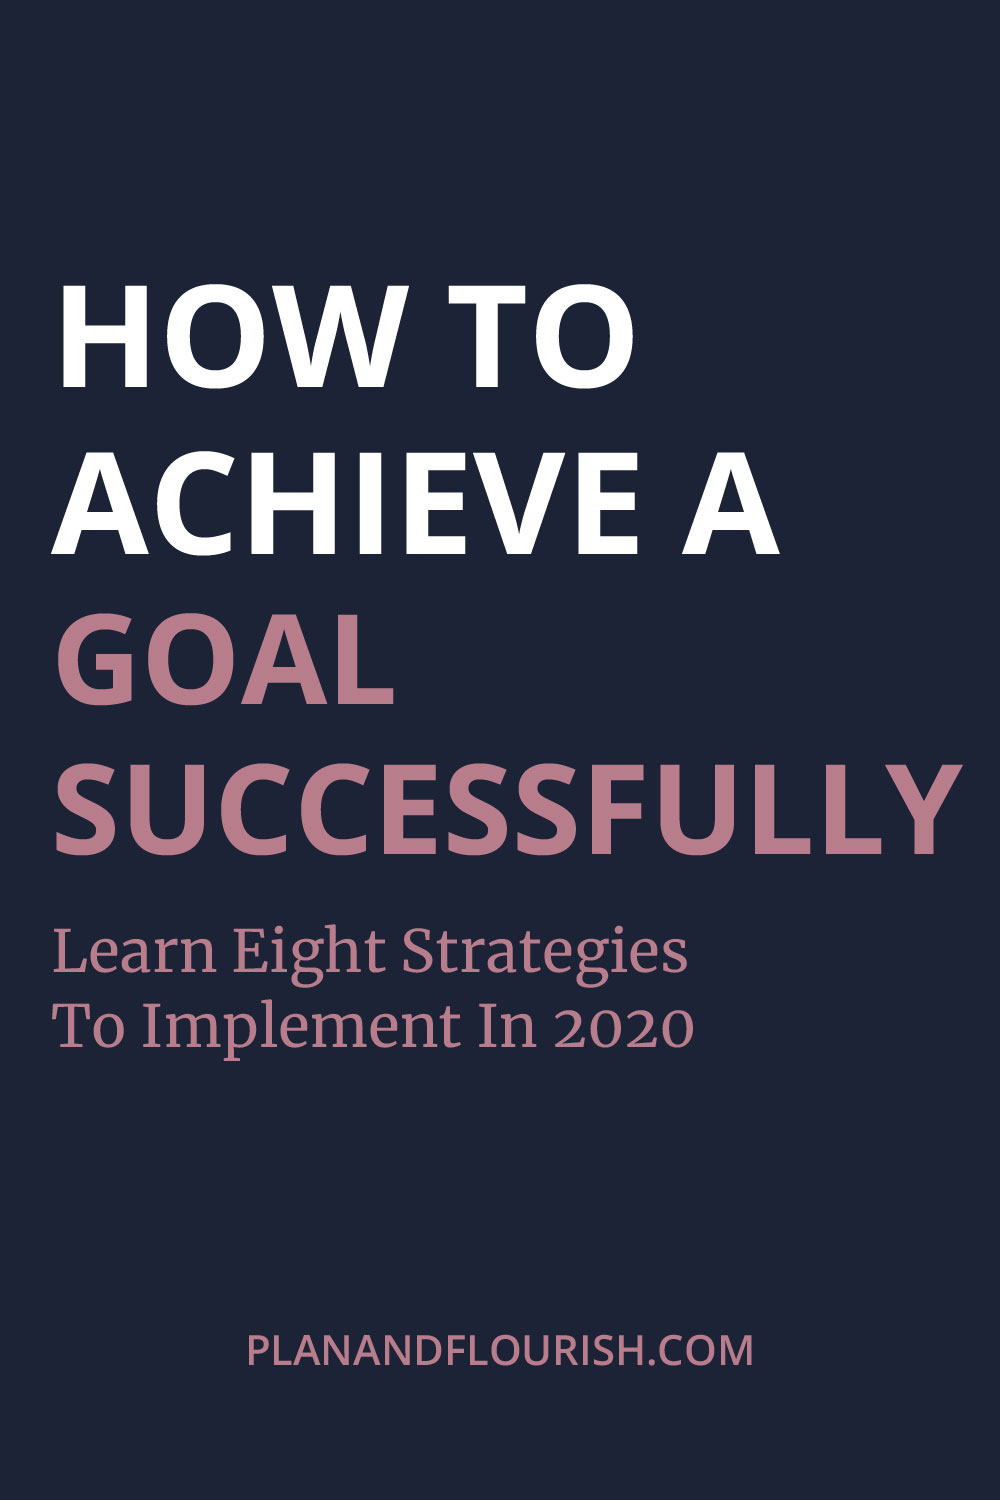 How To Achieve Your Goals And Dreams Successfully